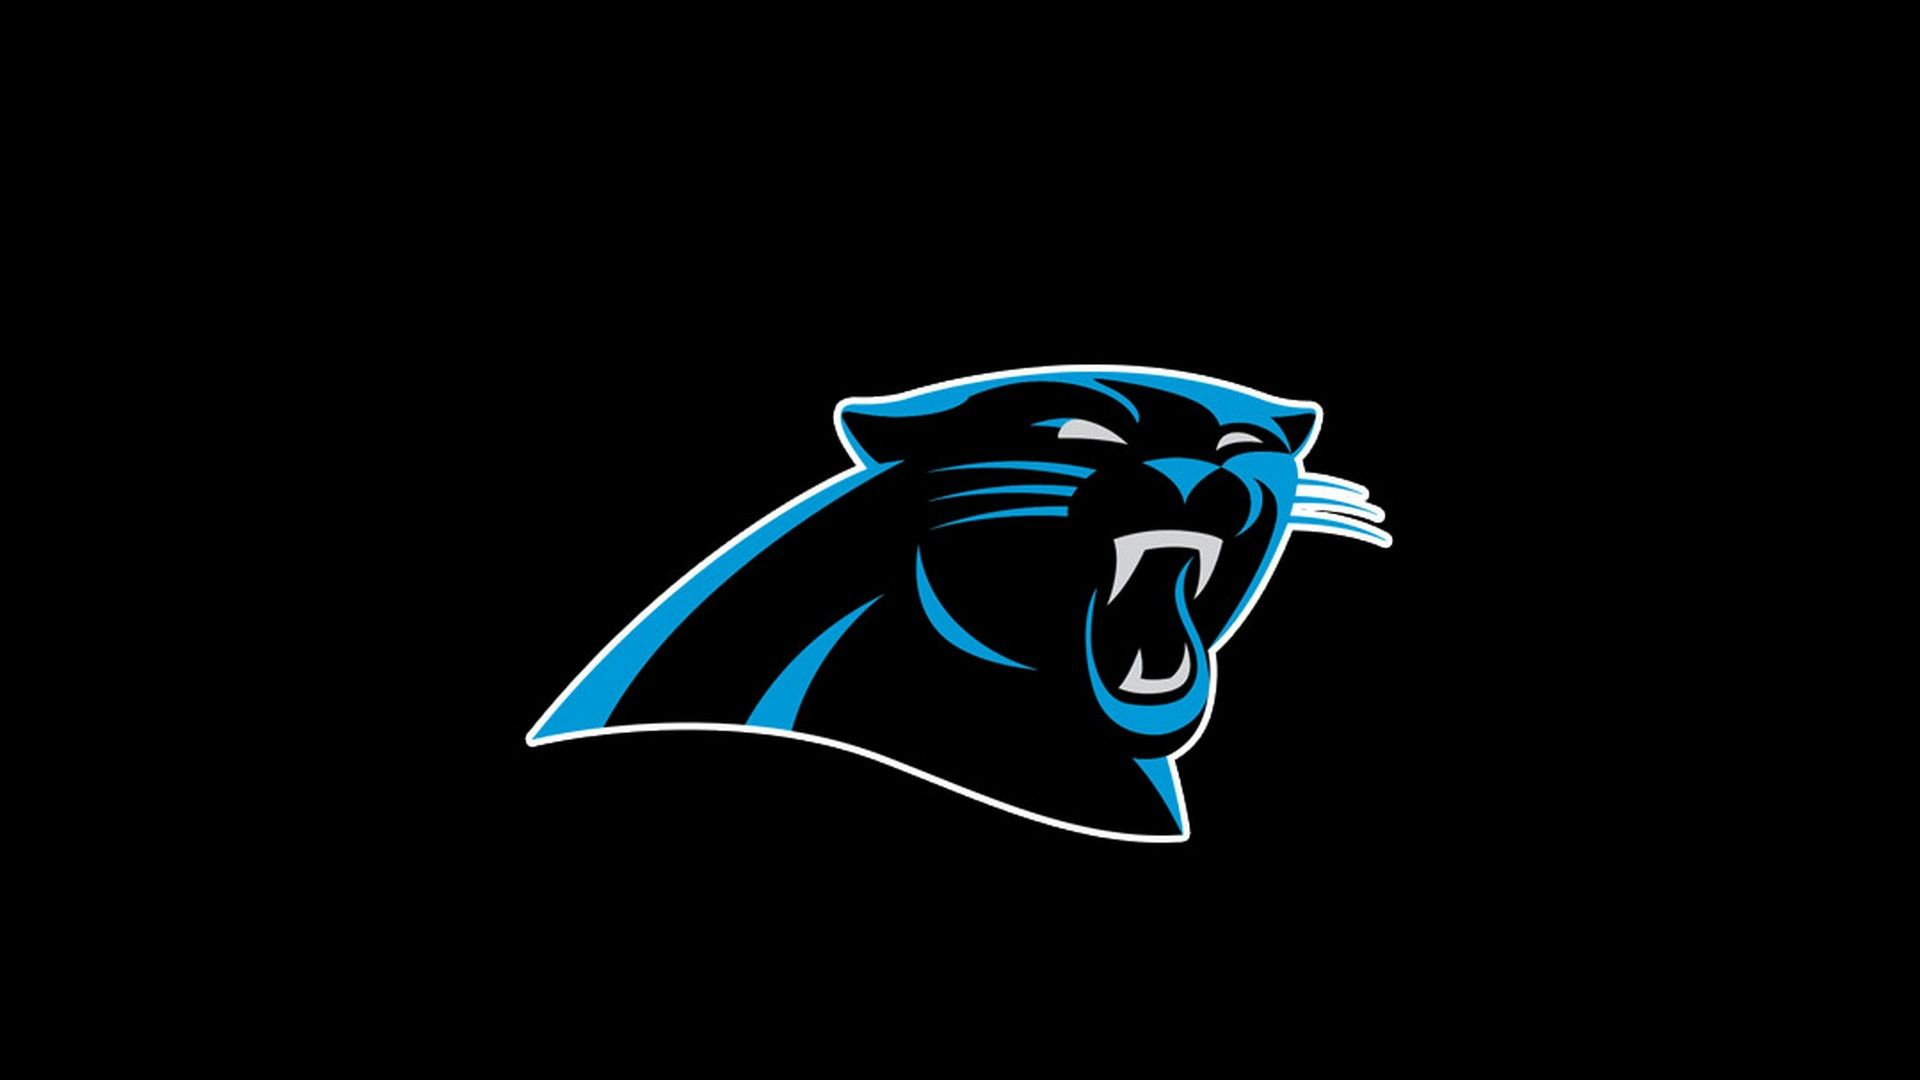 Nfl Wallpapers Atlanta Falcons Wallpaper Nfl Football Wallpaper Carolina Panthers